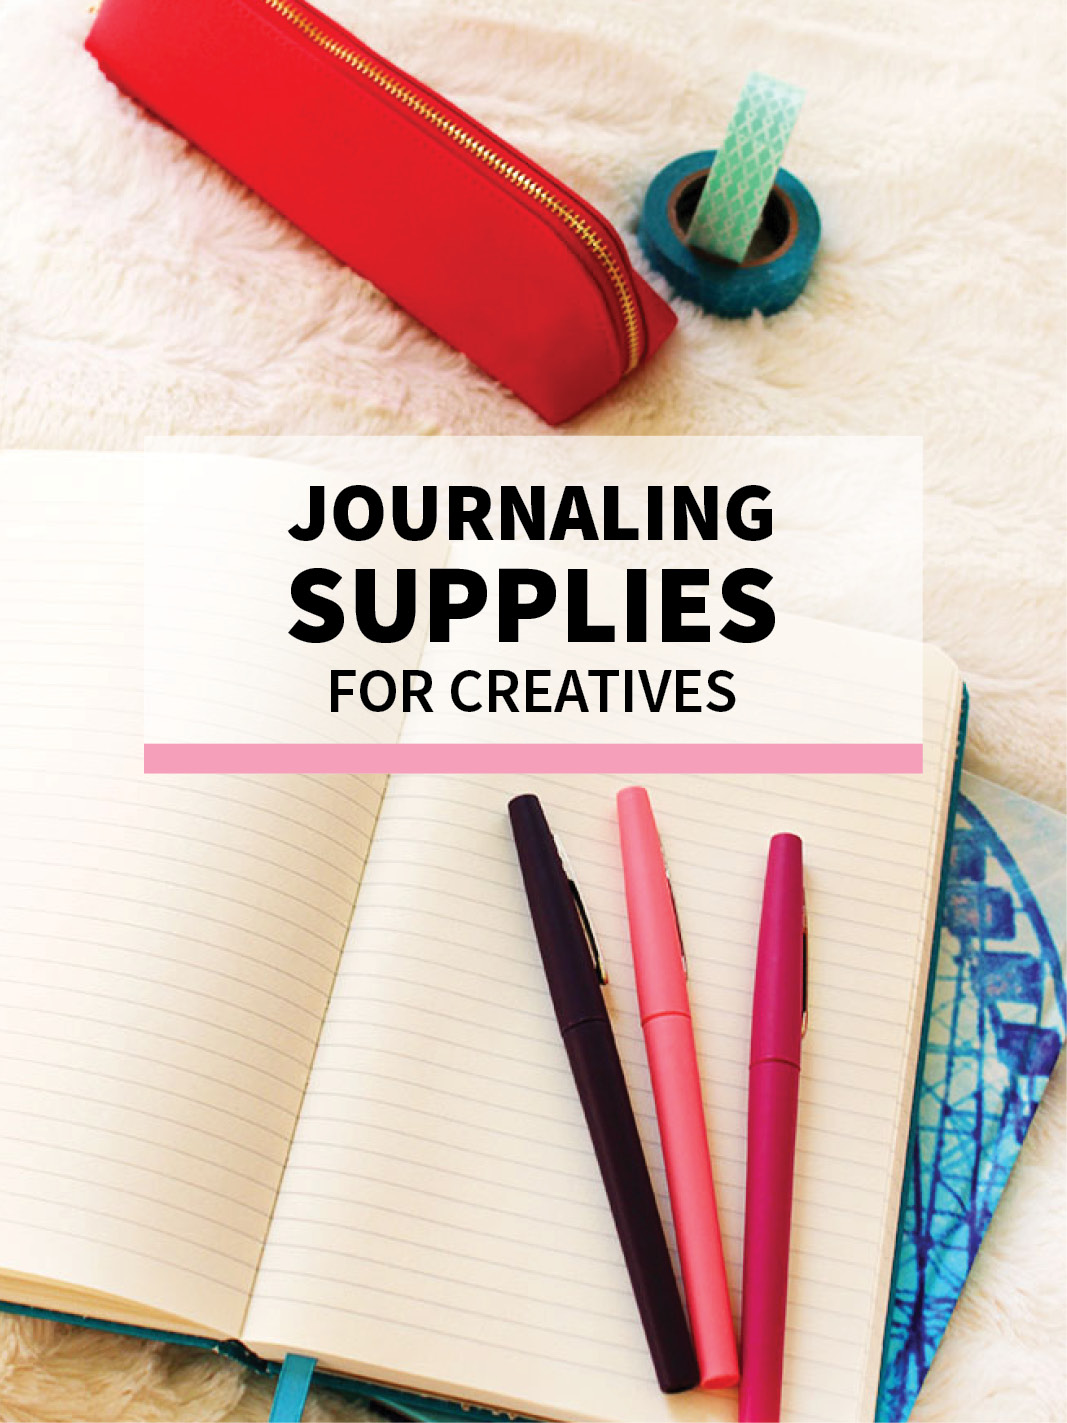 Journaling Supplies for Creatives